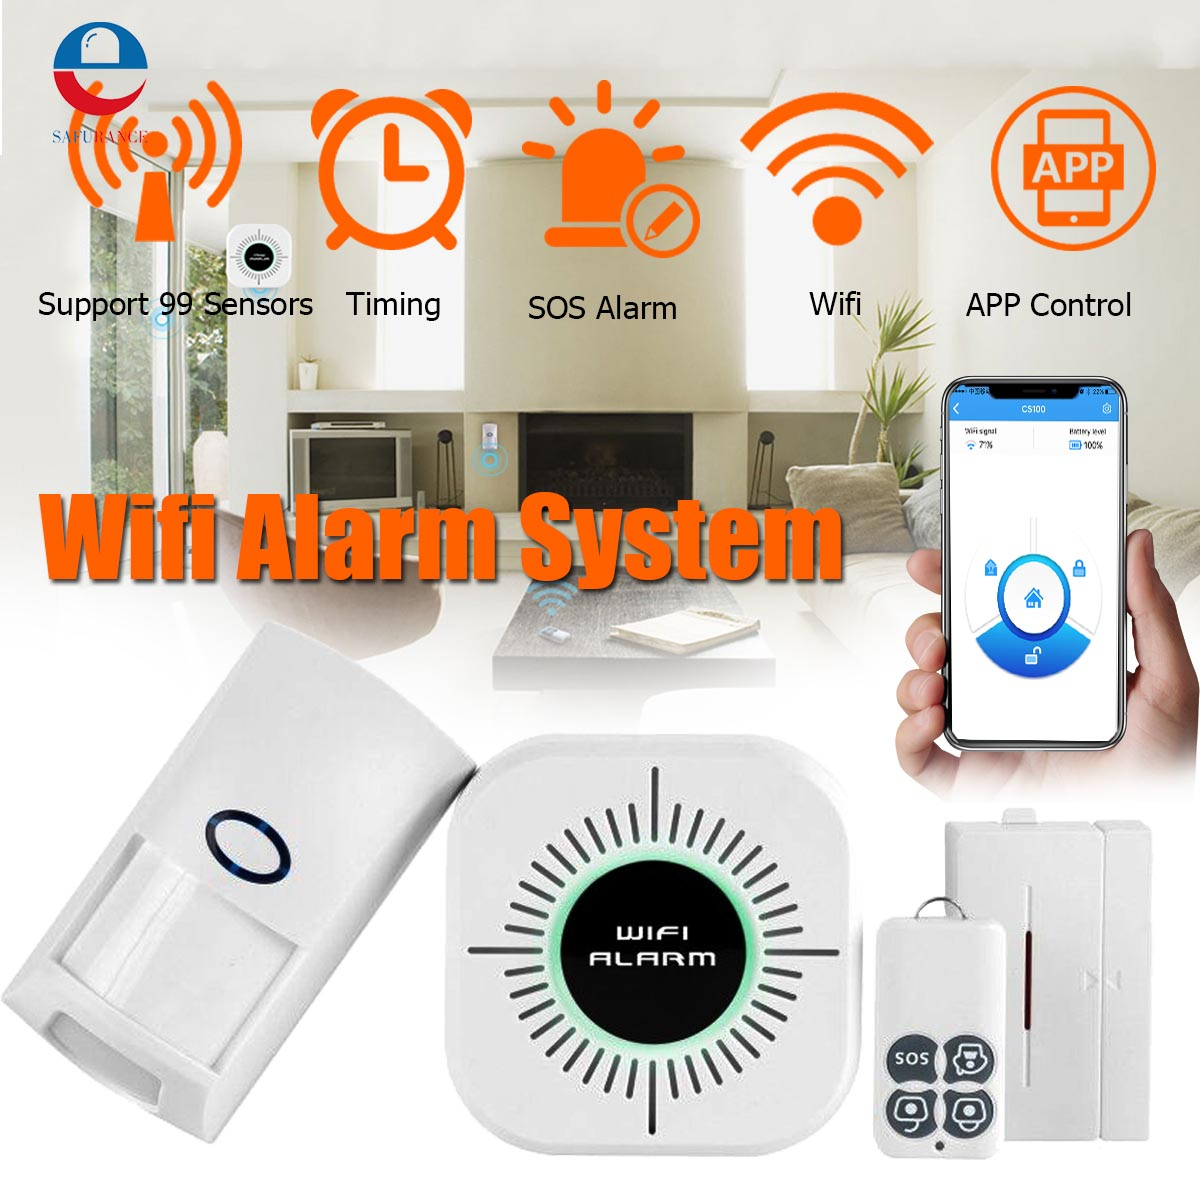 Safurance Home Security Alarm System Wifi Wireless Alarm System Phone App Remote Control PIR Door Sensor Burglar Alarm Security advanced sensor technology security safely completely led wireless autodial phone burglar home security alarm system